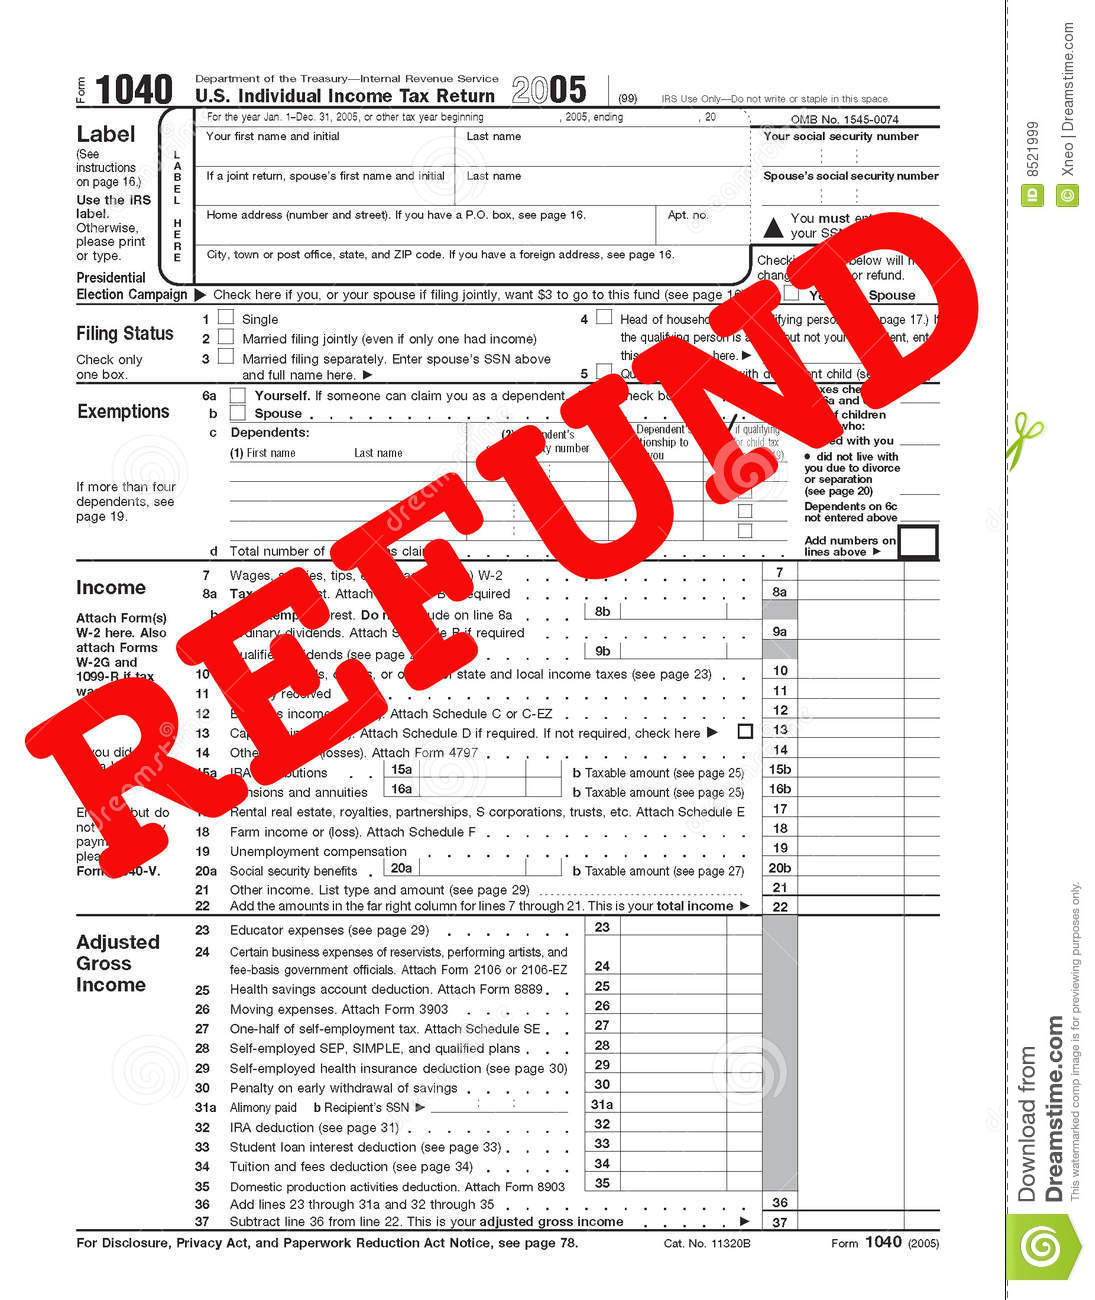 Tax Refund State Income Tax Refund